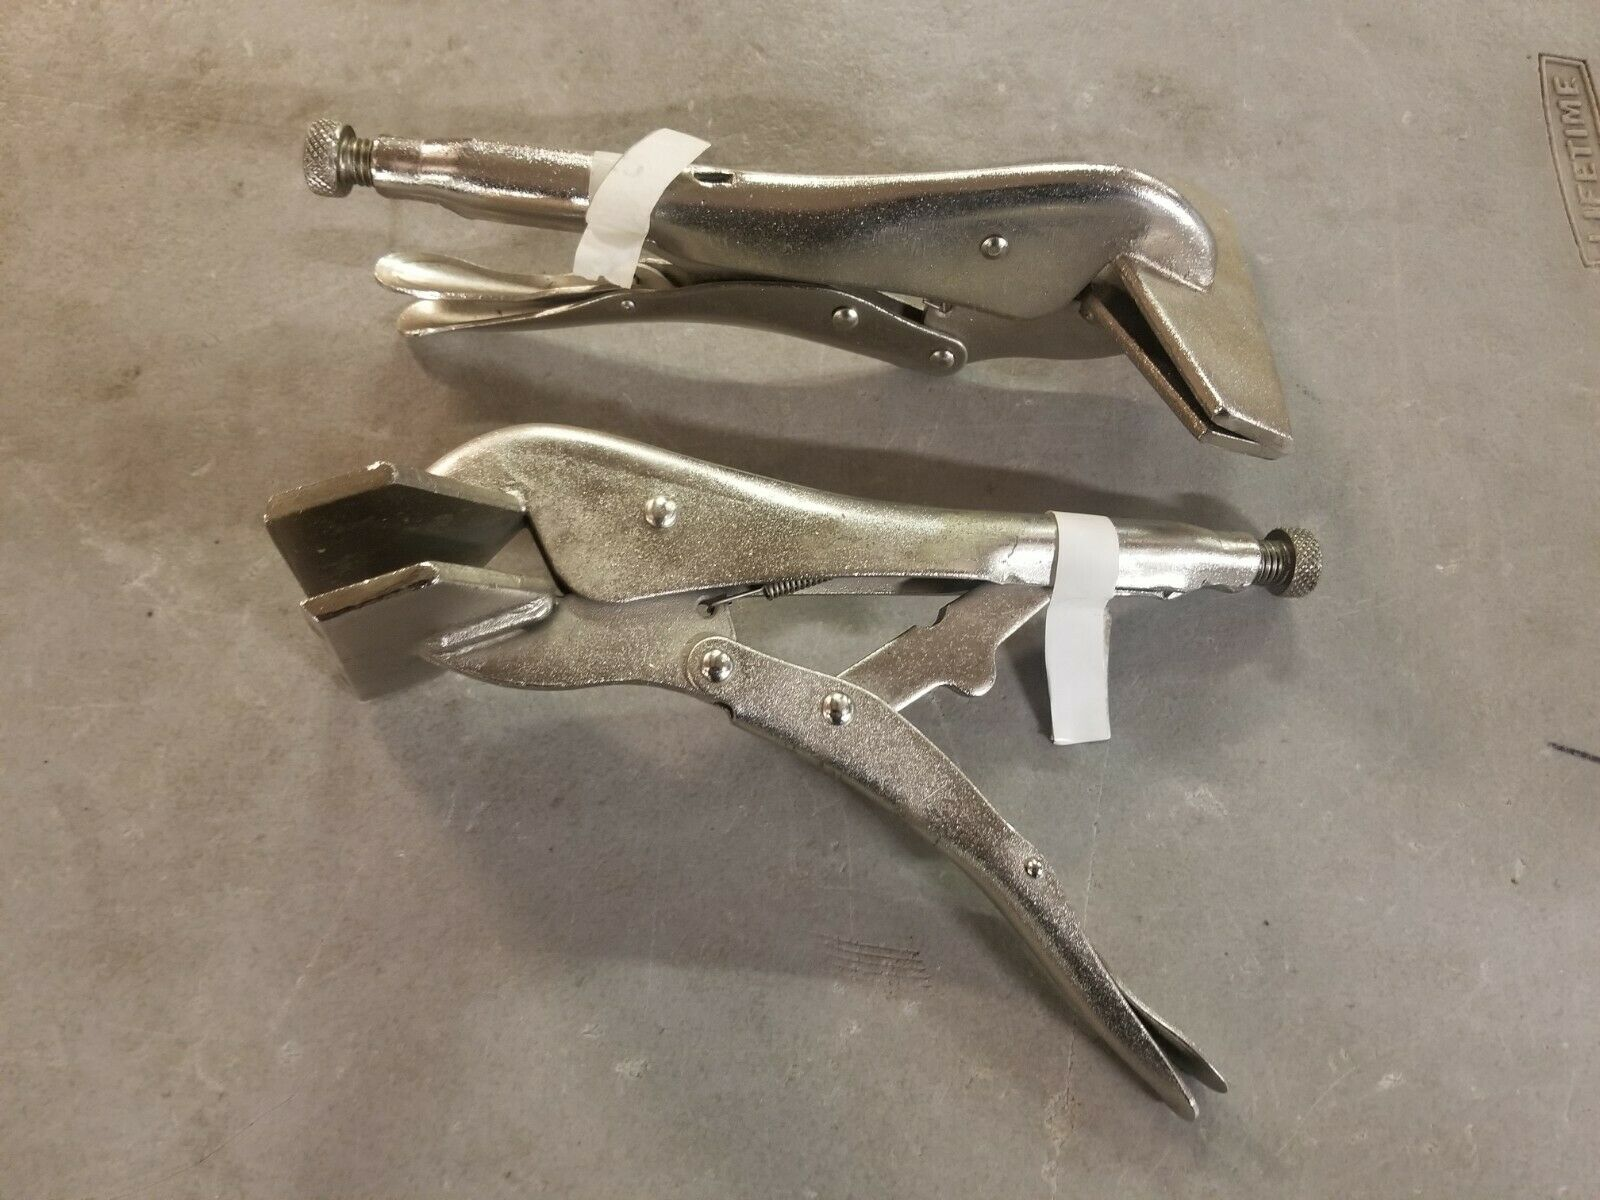 Pair of Heavy Vise Pliers for Clamping metal welding